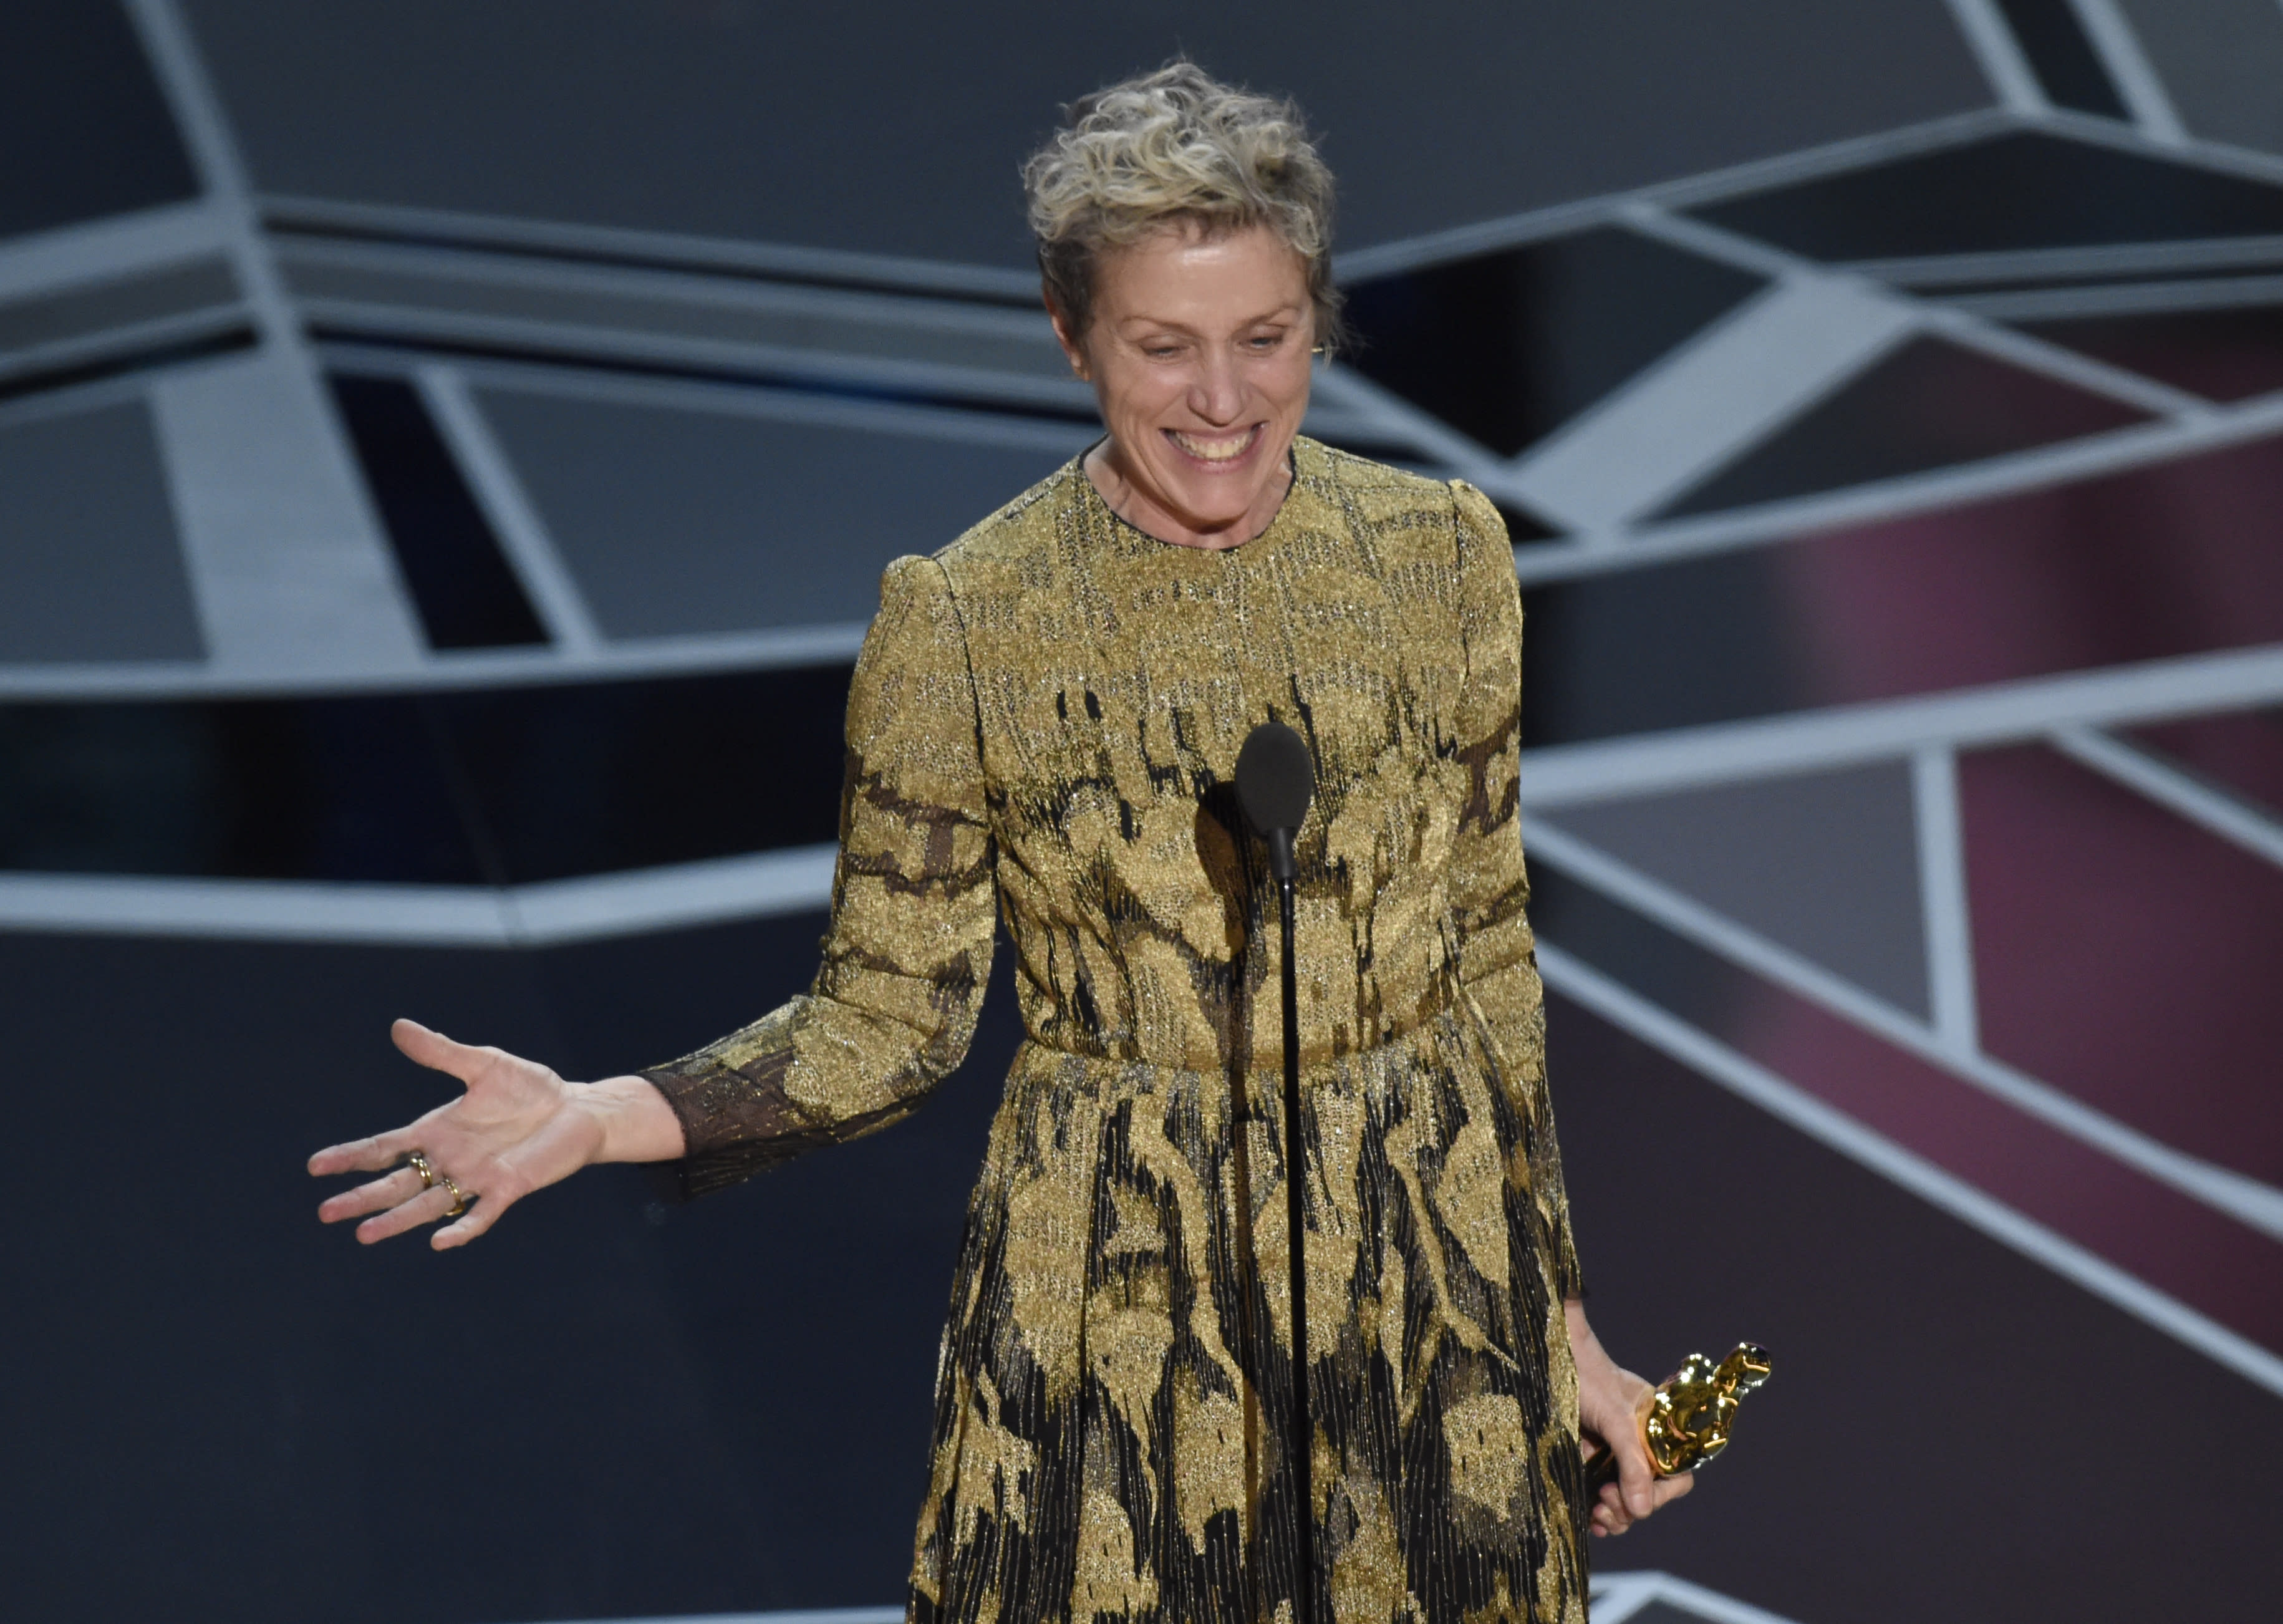 Man tries to steal Frances McDormand award at aftershow ball